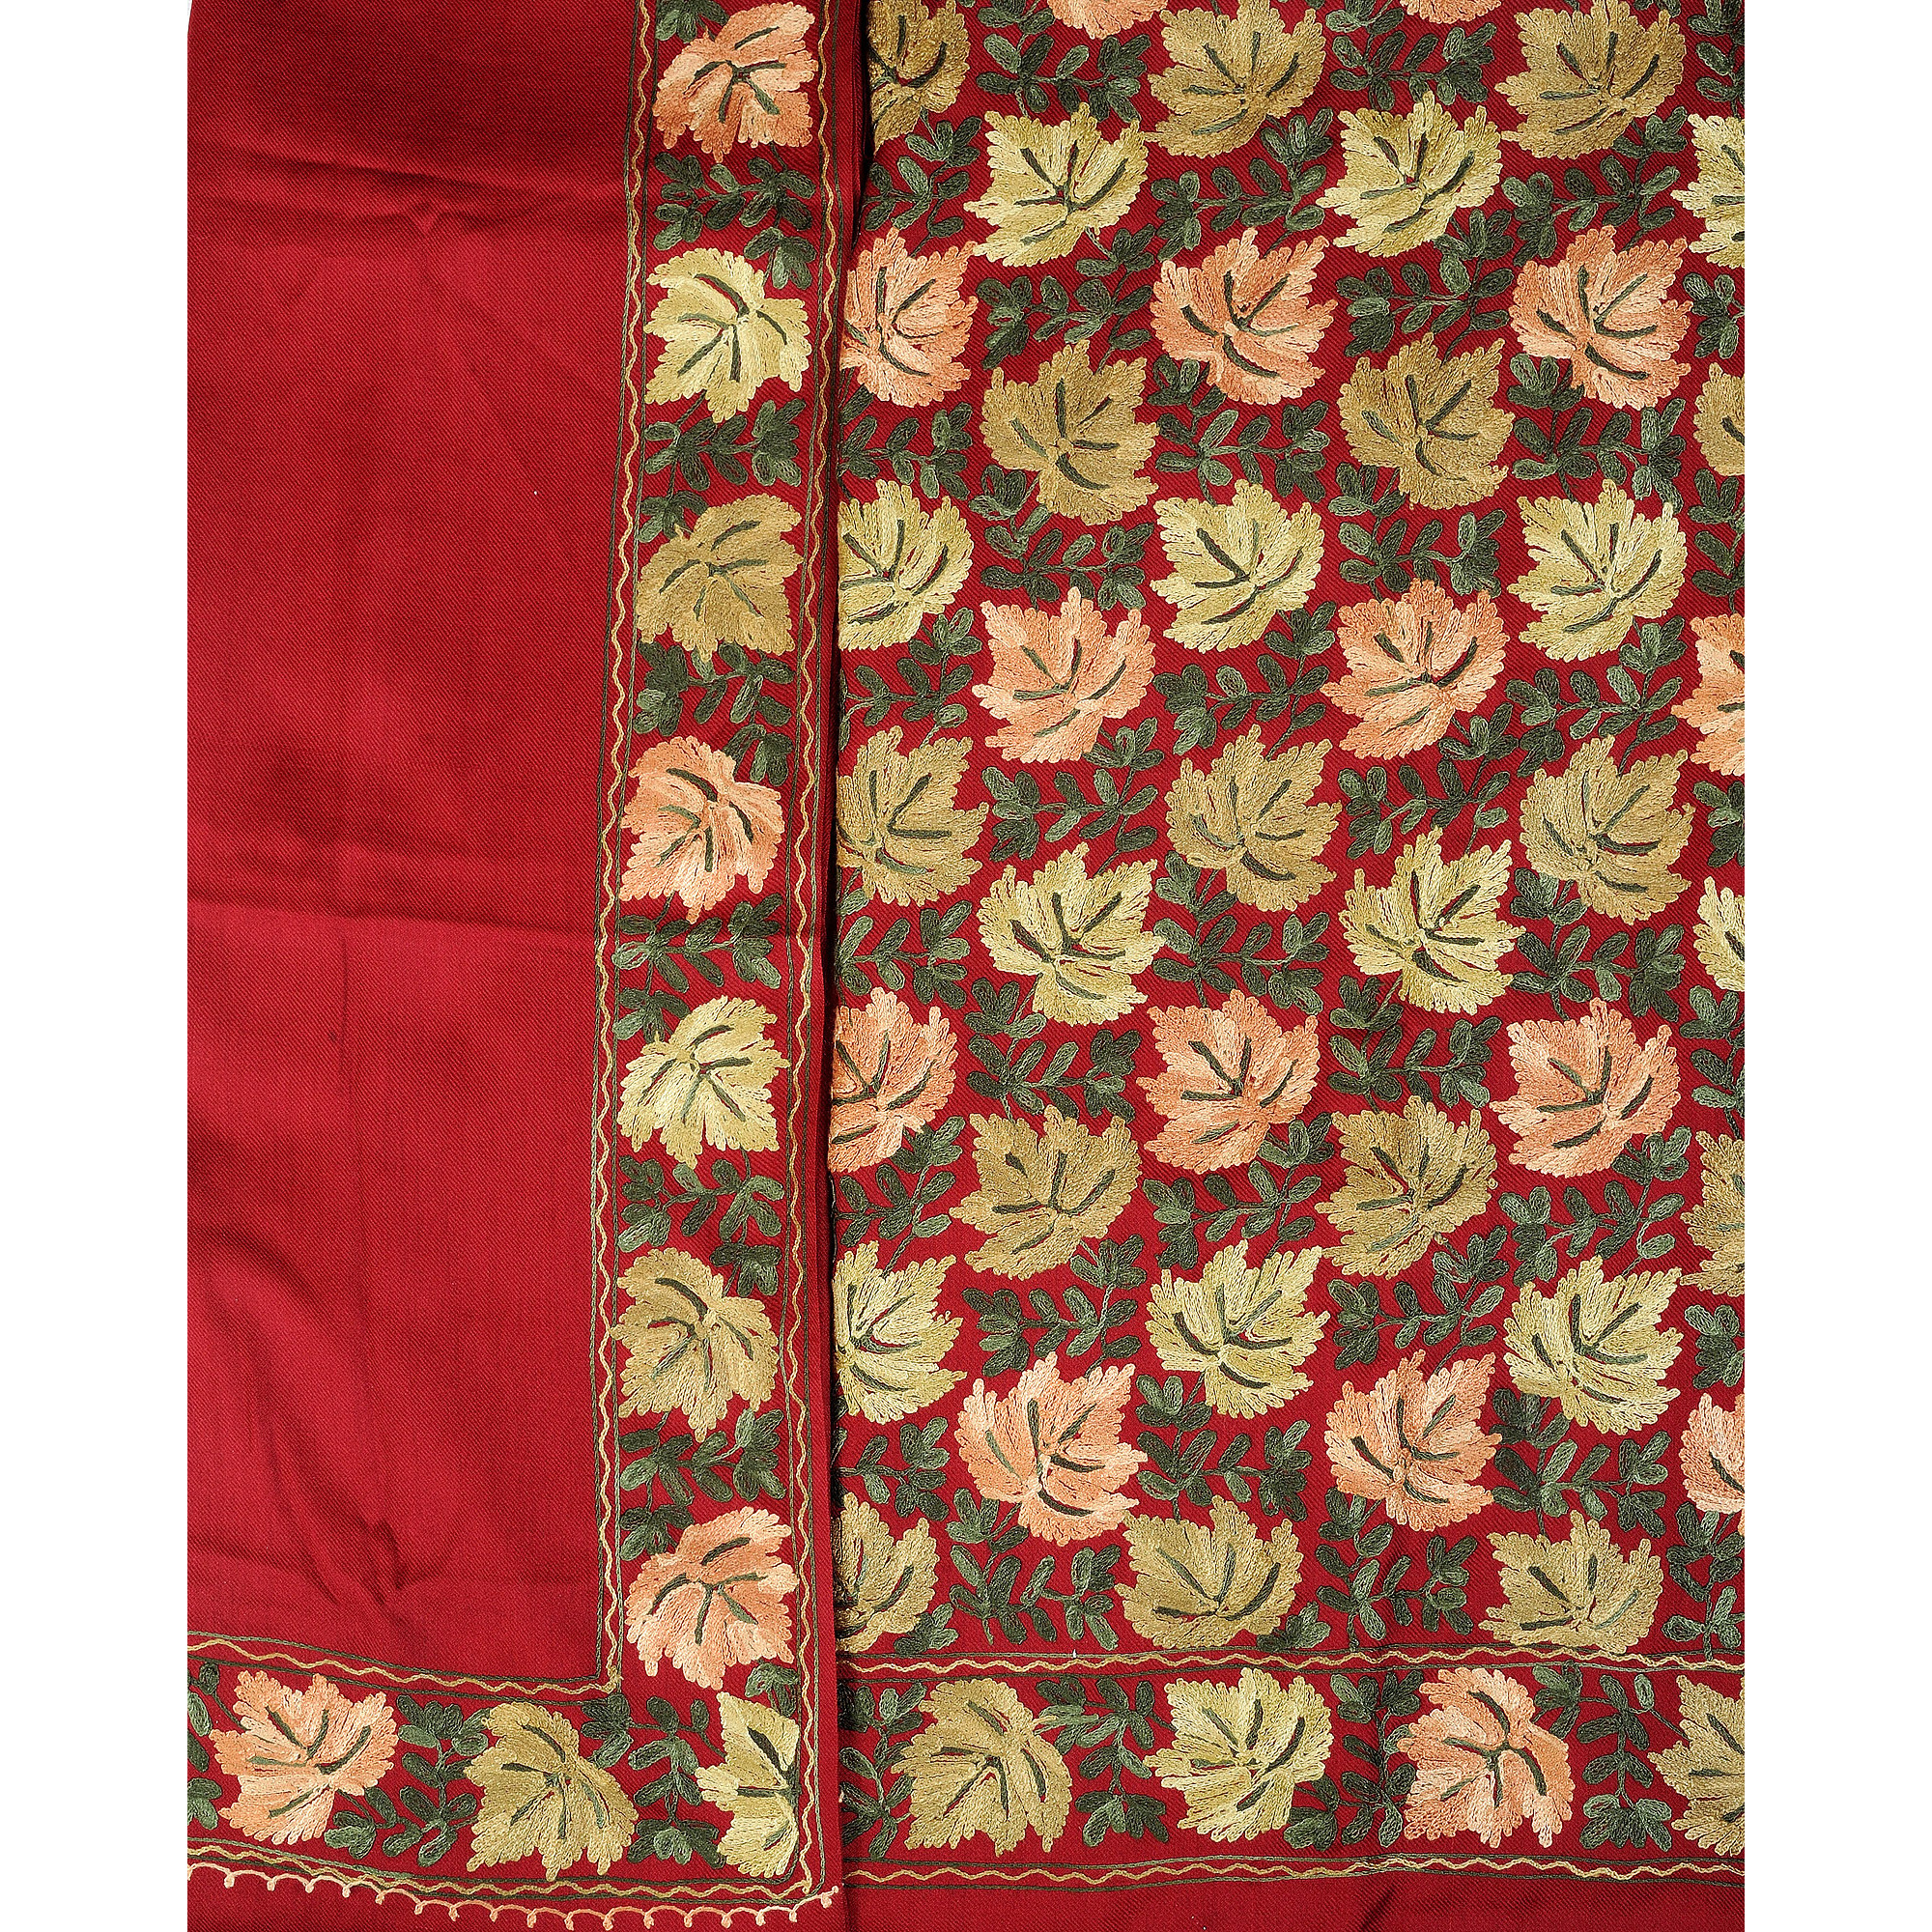 Salwar Kameez Fabric from Amritsar with Ari-Embroidered Maple Leaves